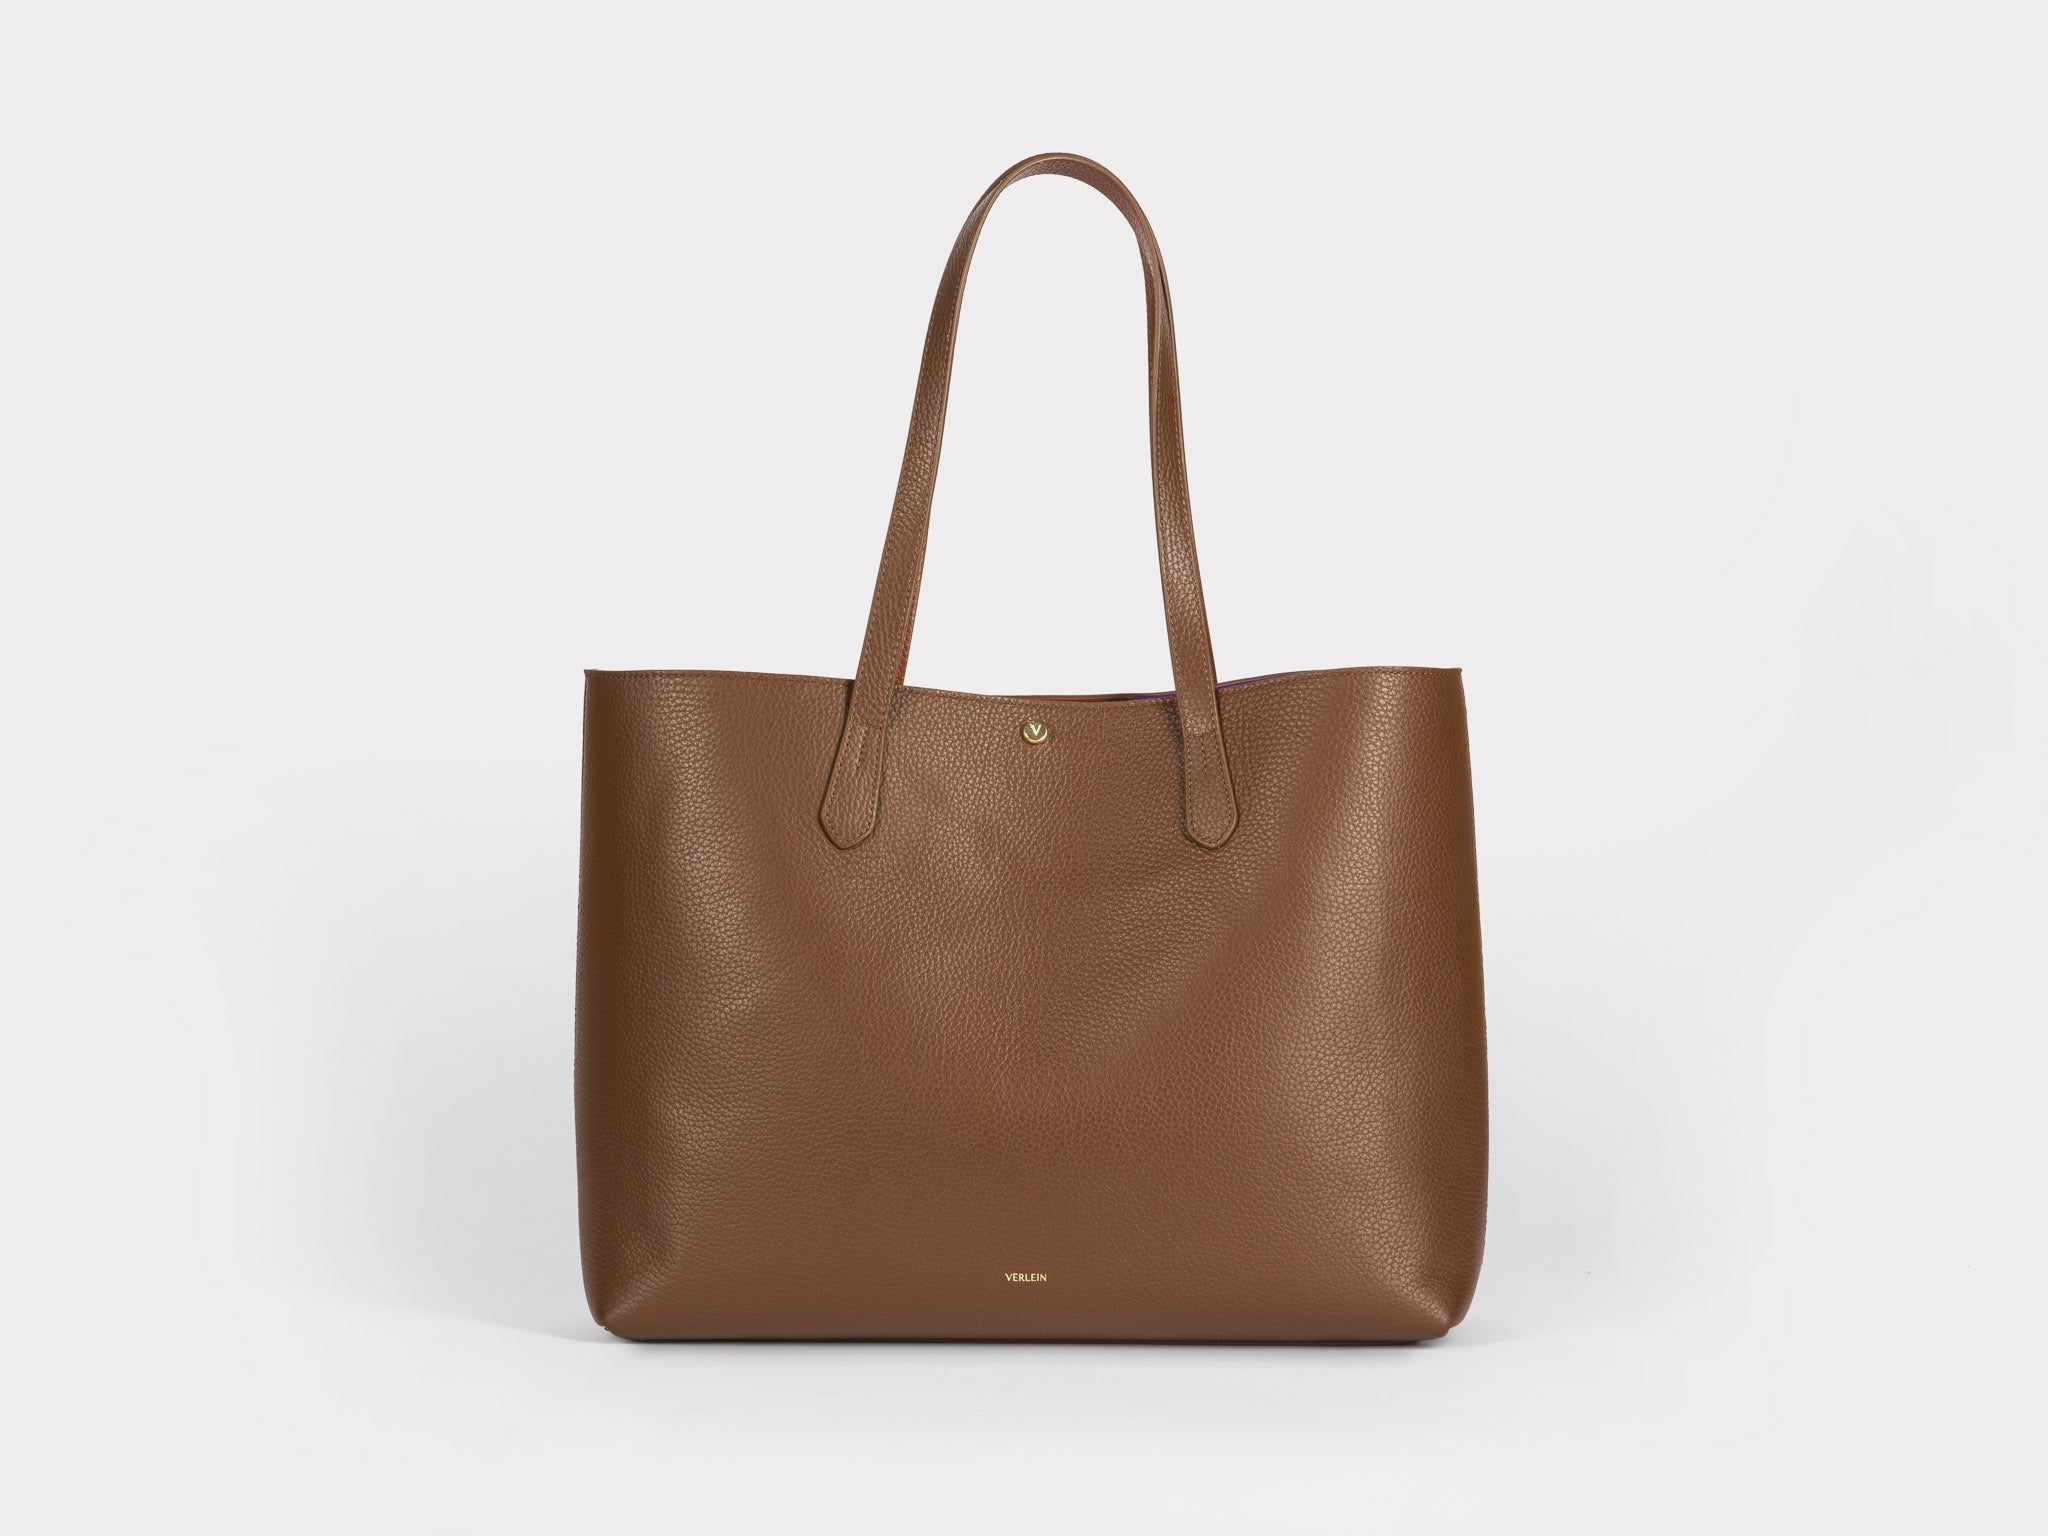 Julia Cinch Tote Bag in Chocolate Brown | Verlein